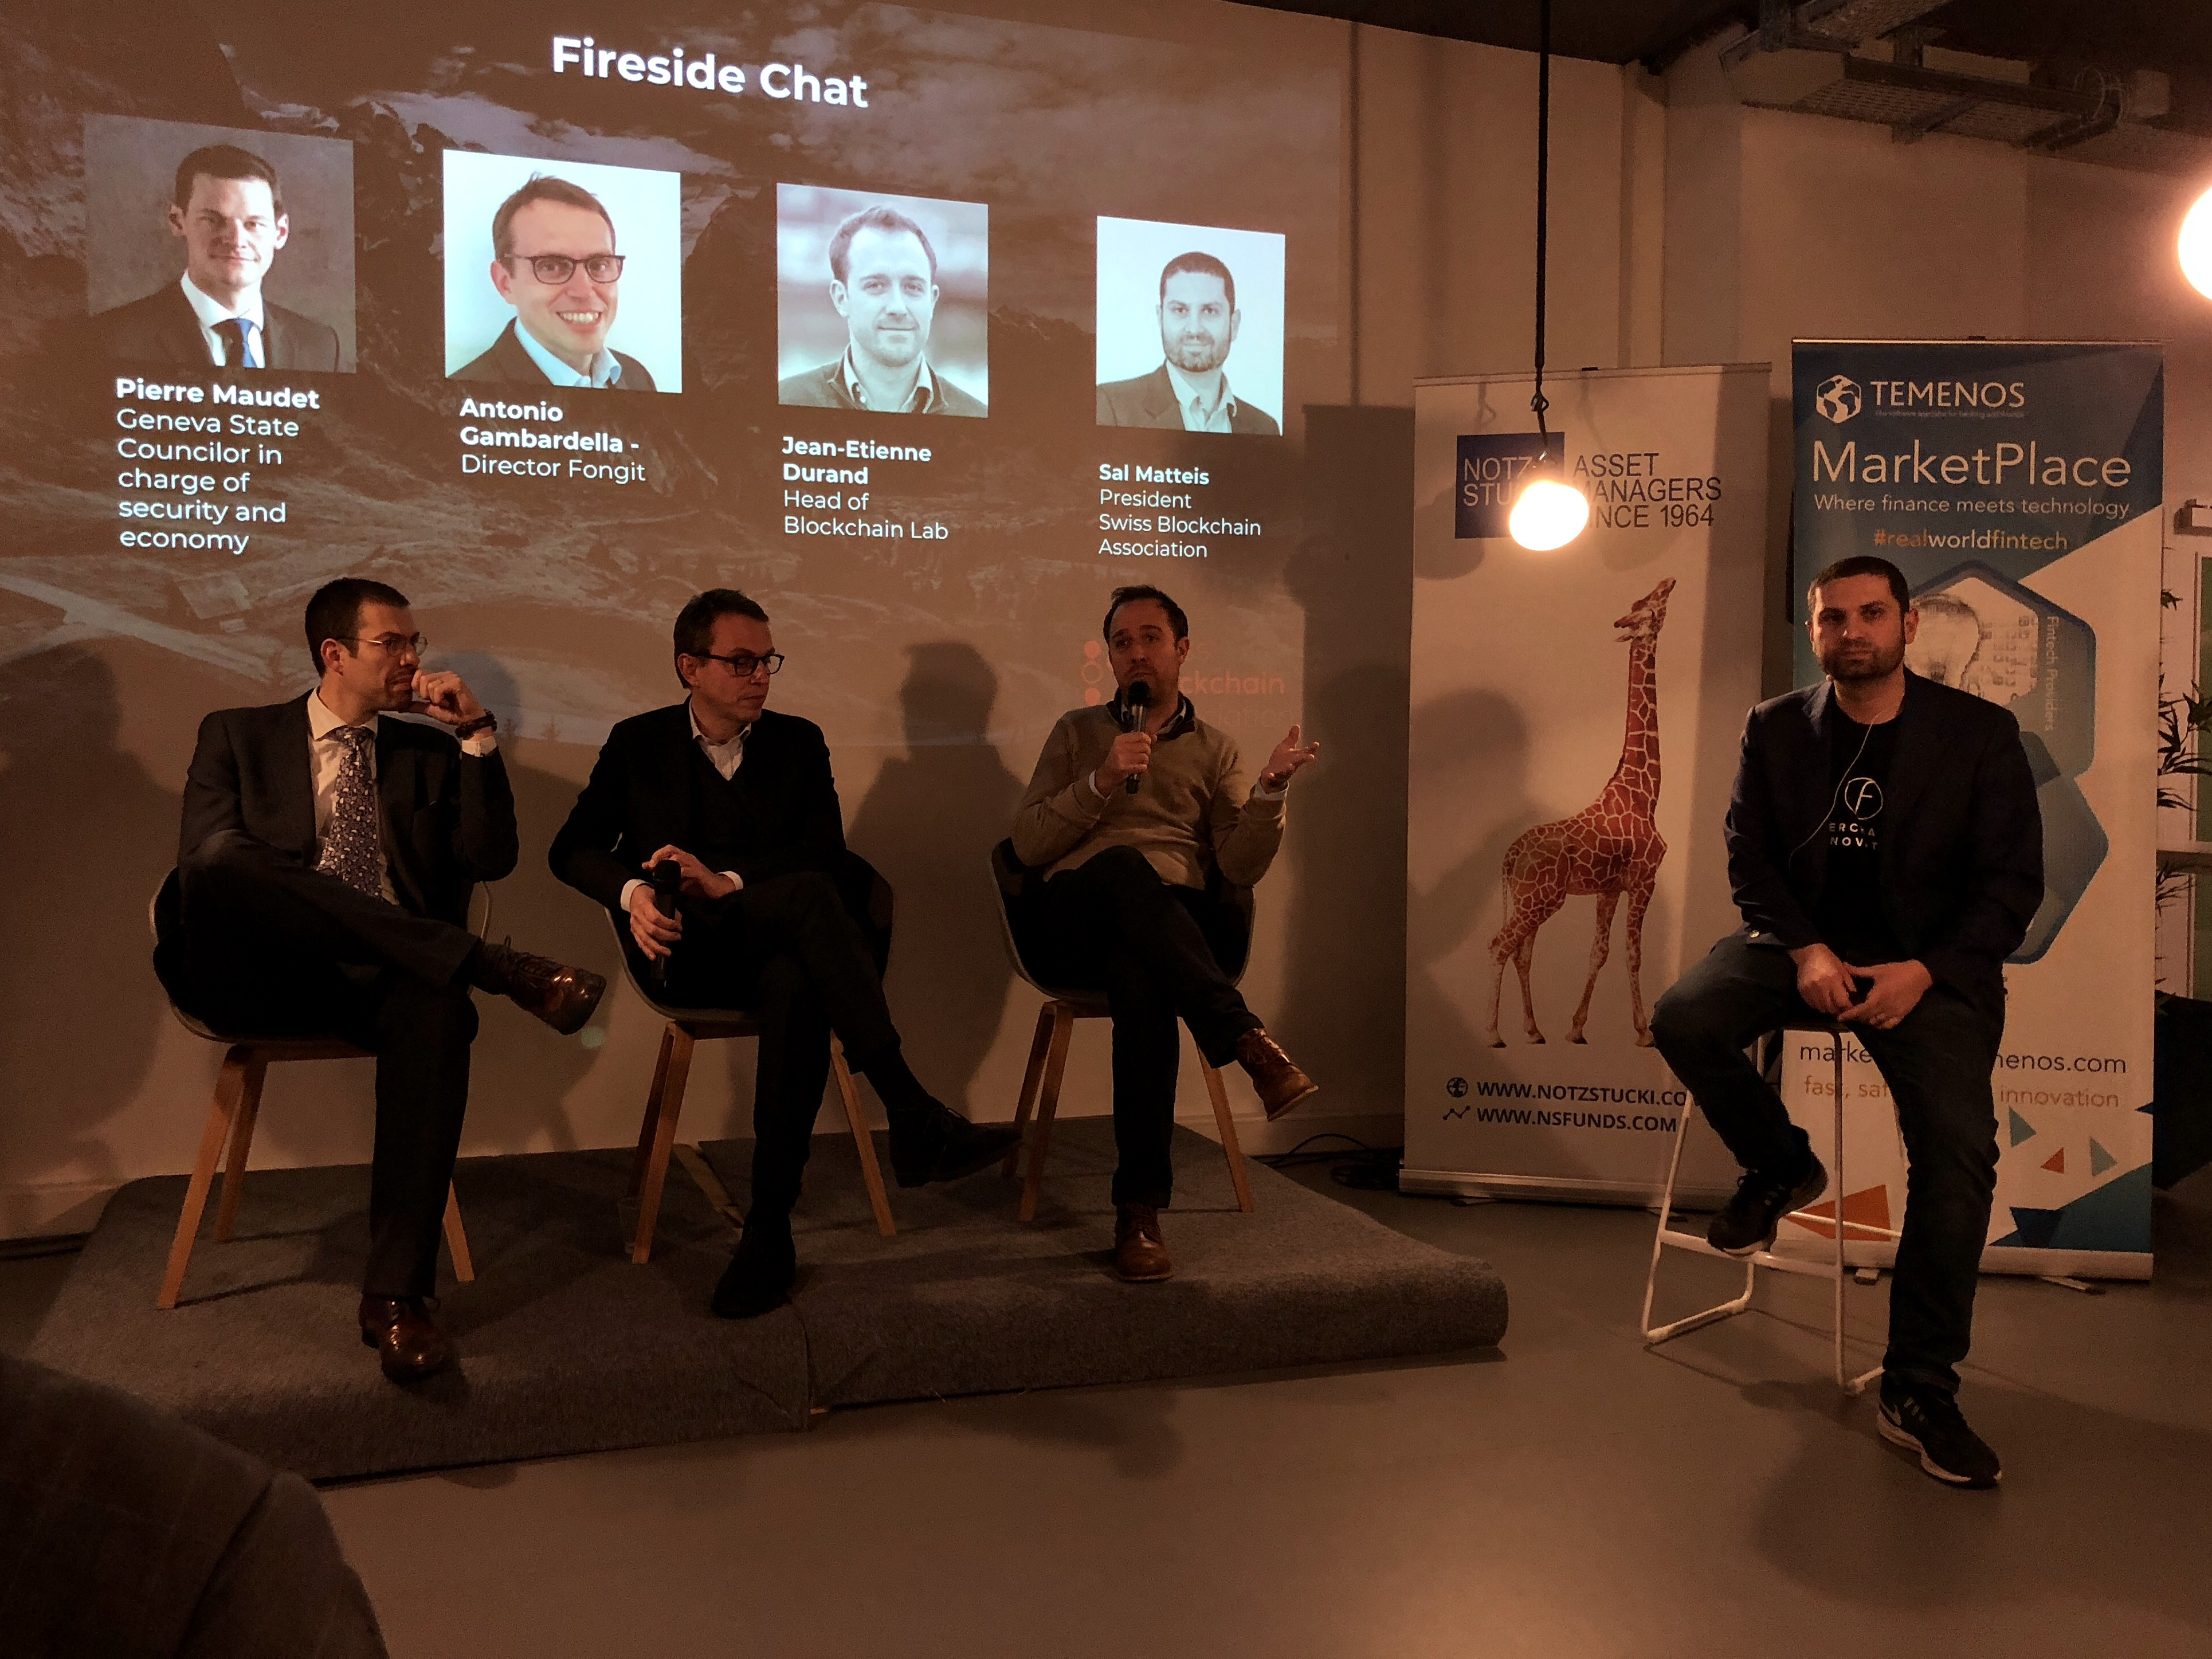 Fireside Chat at Blockchain Lab presentation